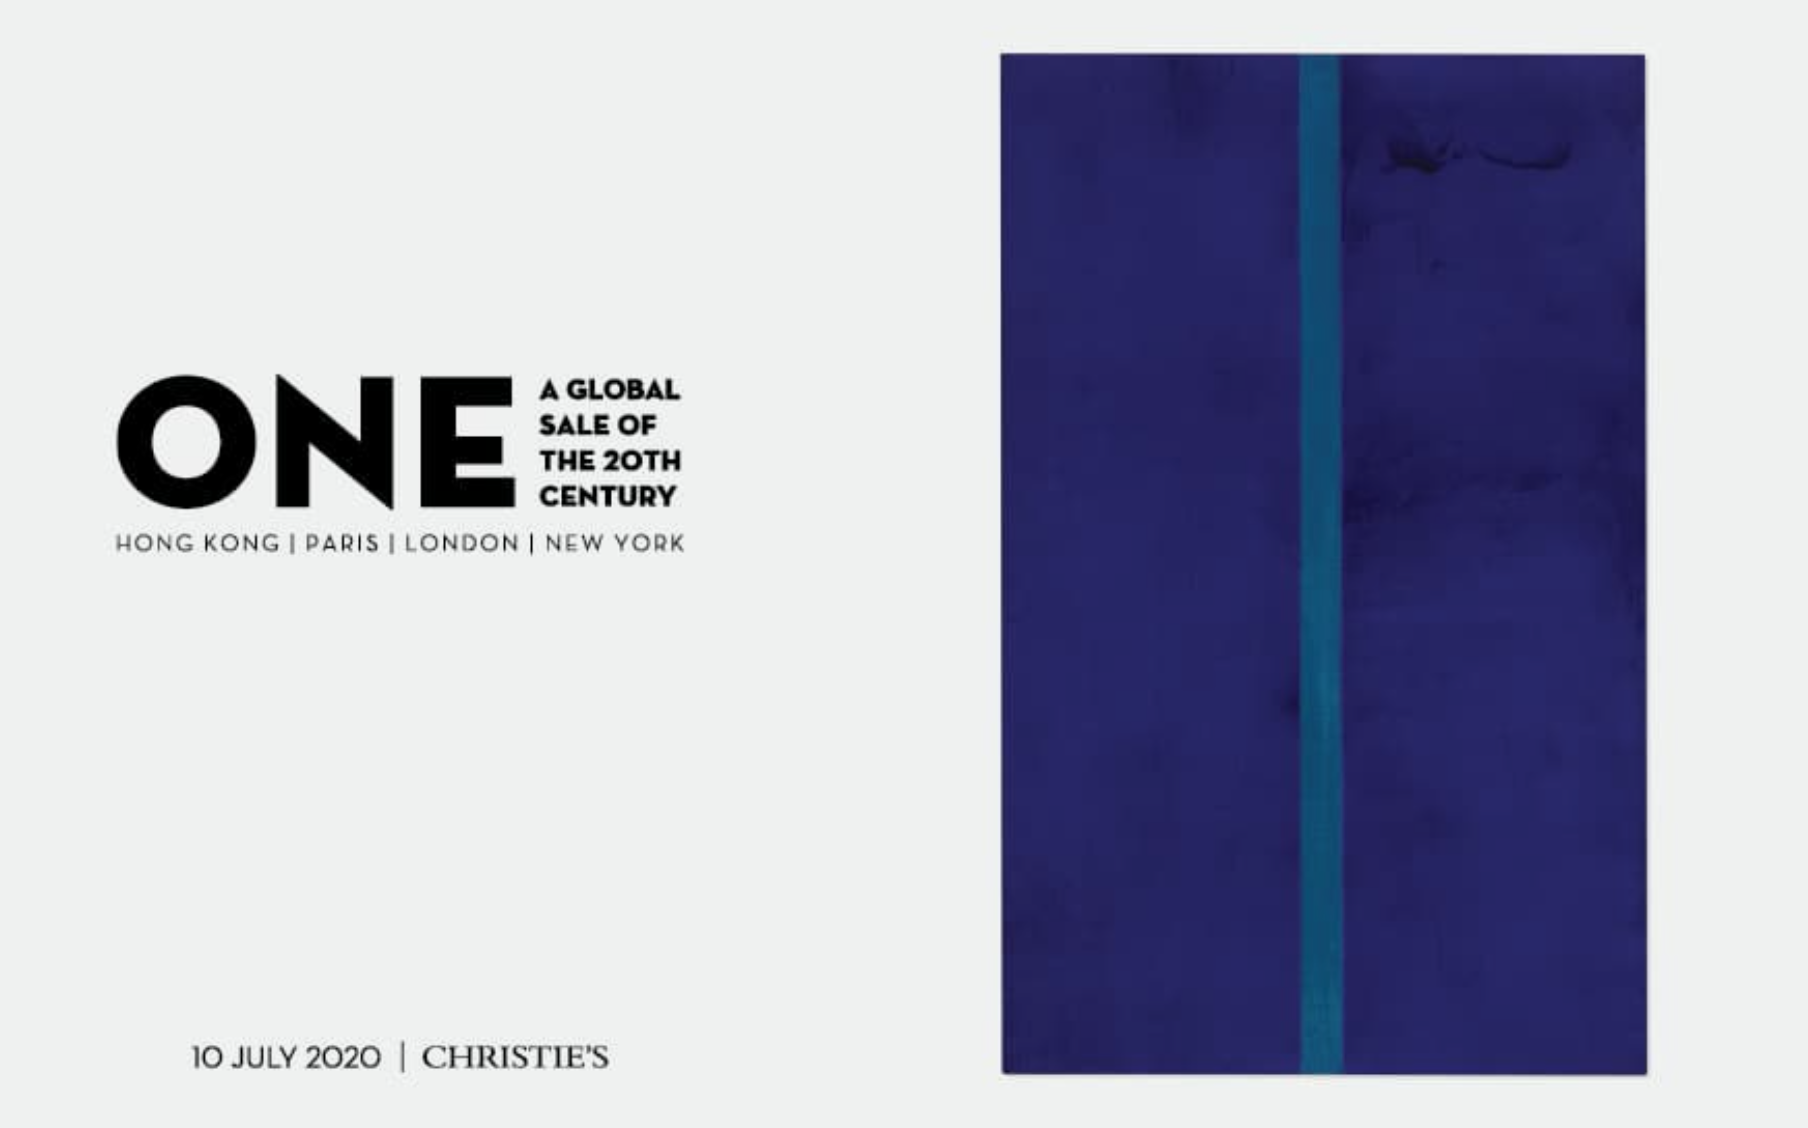 CHRISTIES ONE GLOBAL